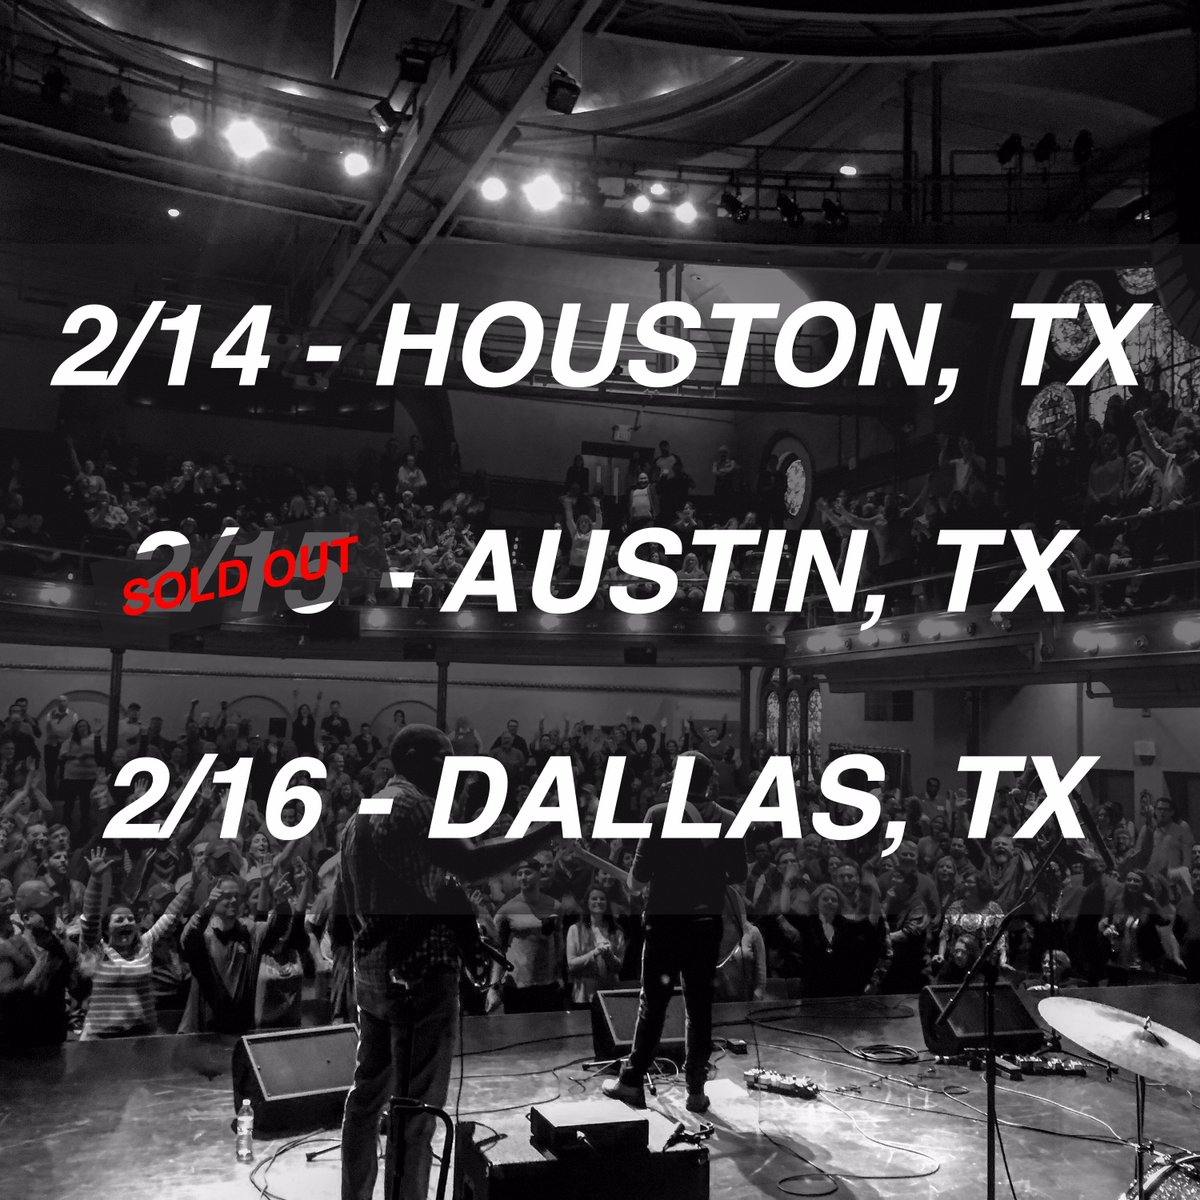 Low ticket alert! Only a few tickets left for my upcoming shows in Texas with @davidgracemusic. Get em while you still can! Tickets: Houston, TX (2/14) - https://bit.ly/2TAC1YS  Austin, TX (2/15) - SOLD OUT Dallas, TX (2/16) - https://bit.ly/2Gywbnl